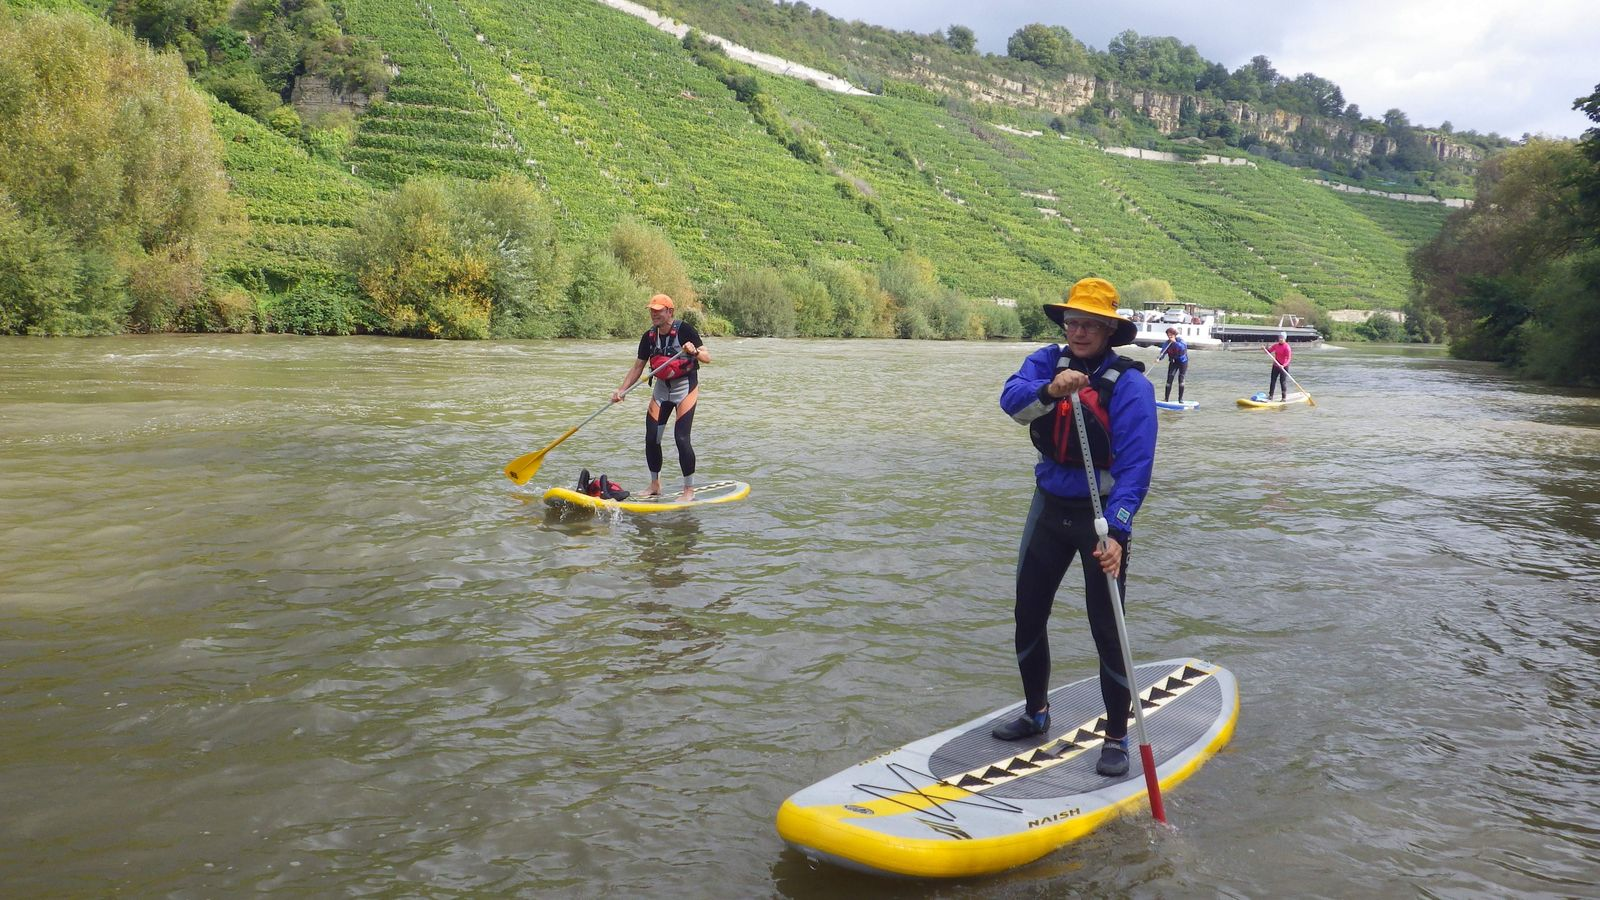 SUP Stehpaddler Standup Paddling